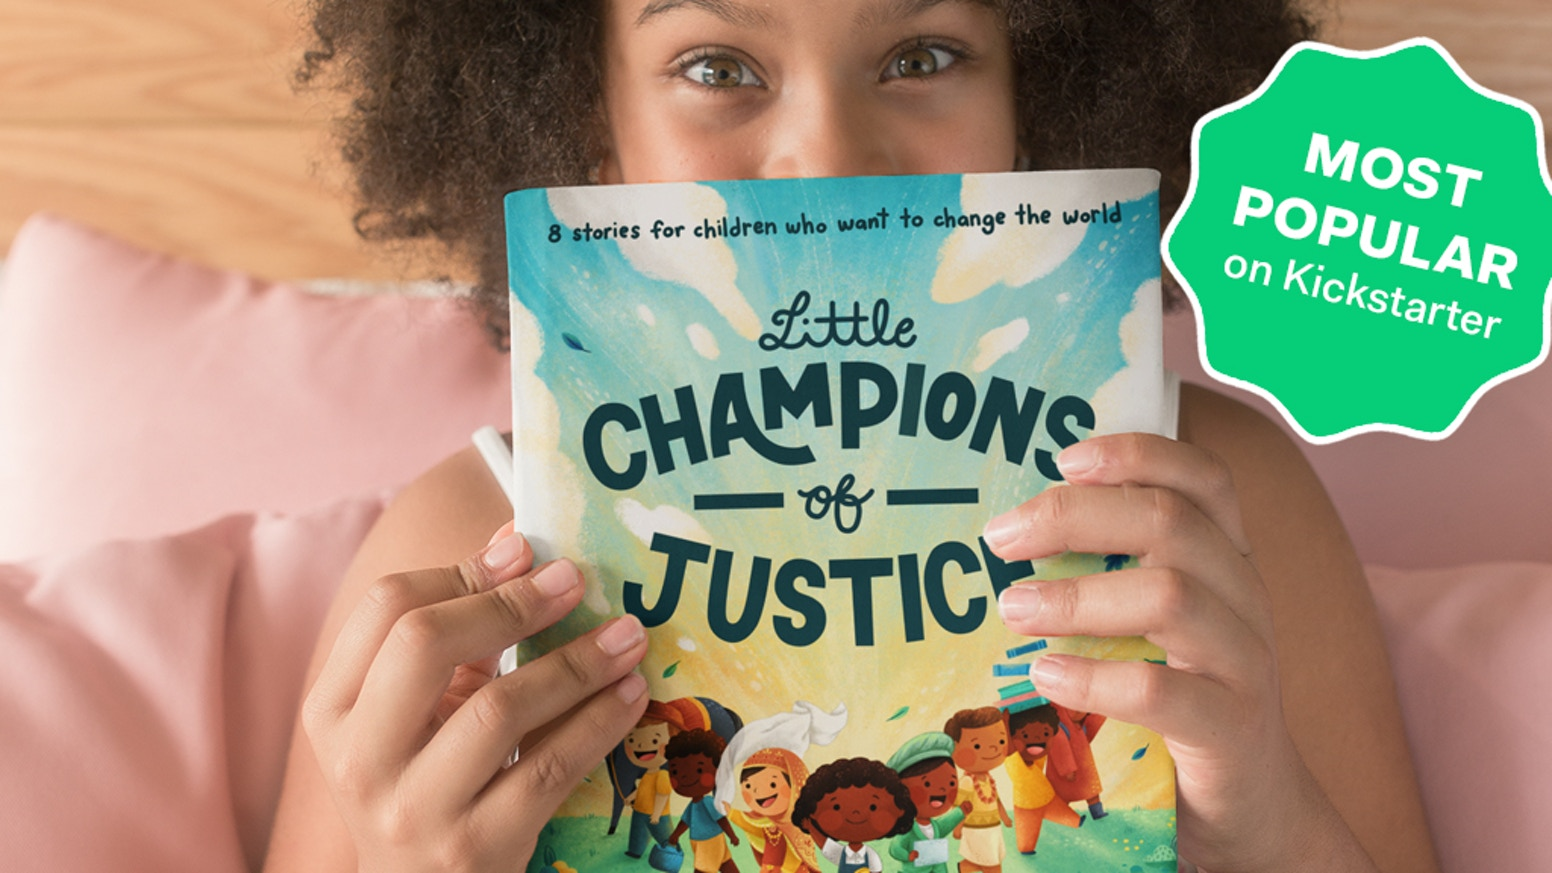 8 illustrated stories about justice, courage, and determination for children who want to change the world.